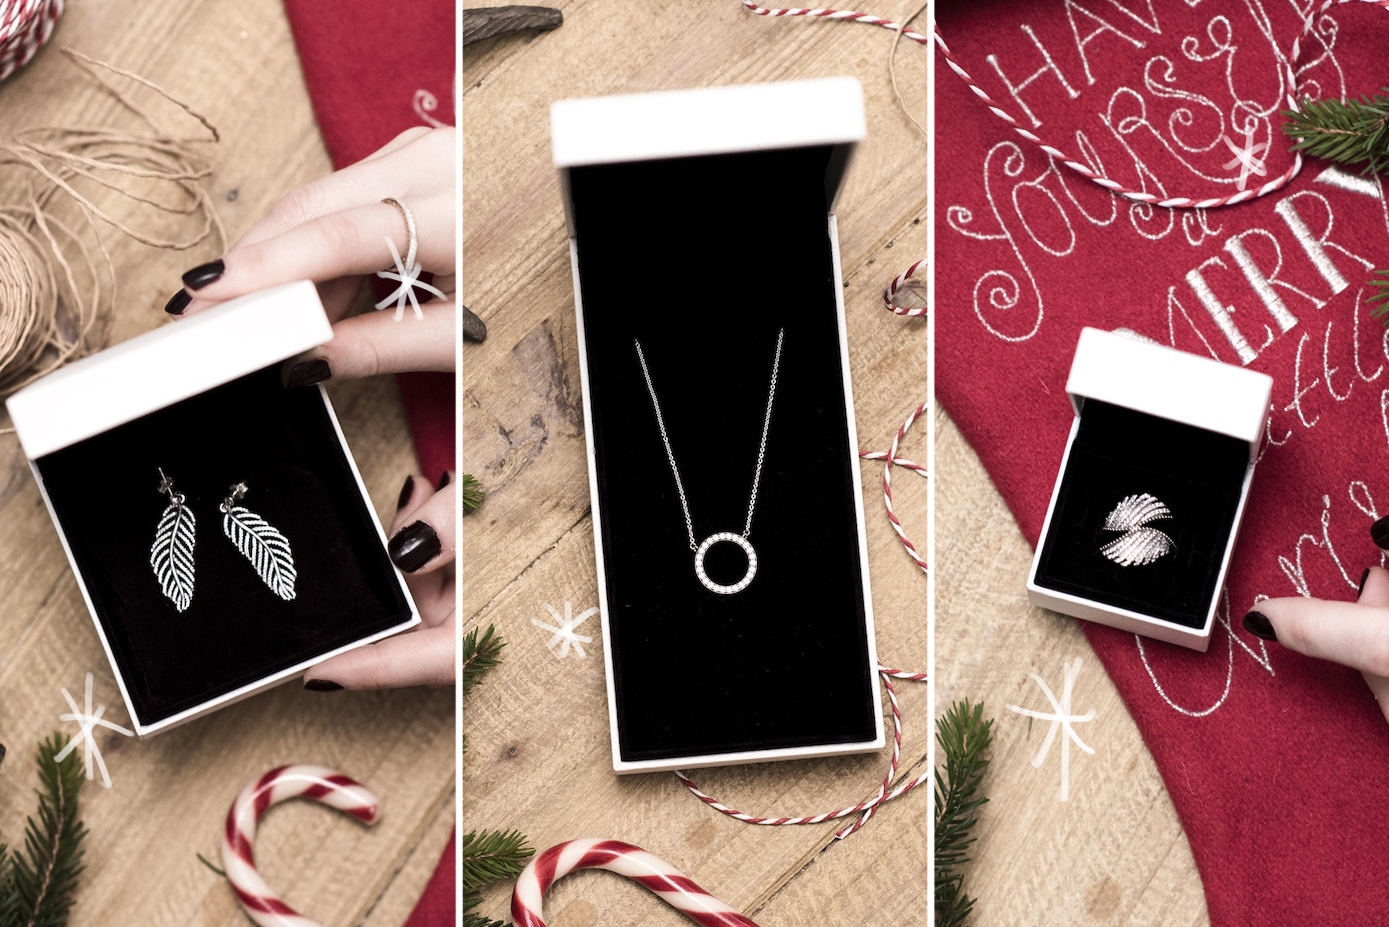 Christmas gifts for everyone with Pandora ♥ - Tiphaine Marie ...